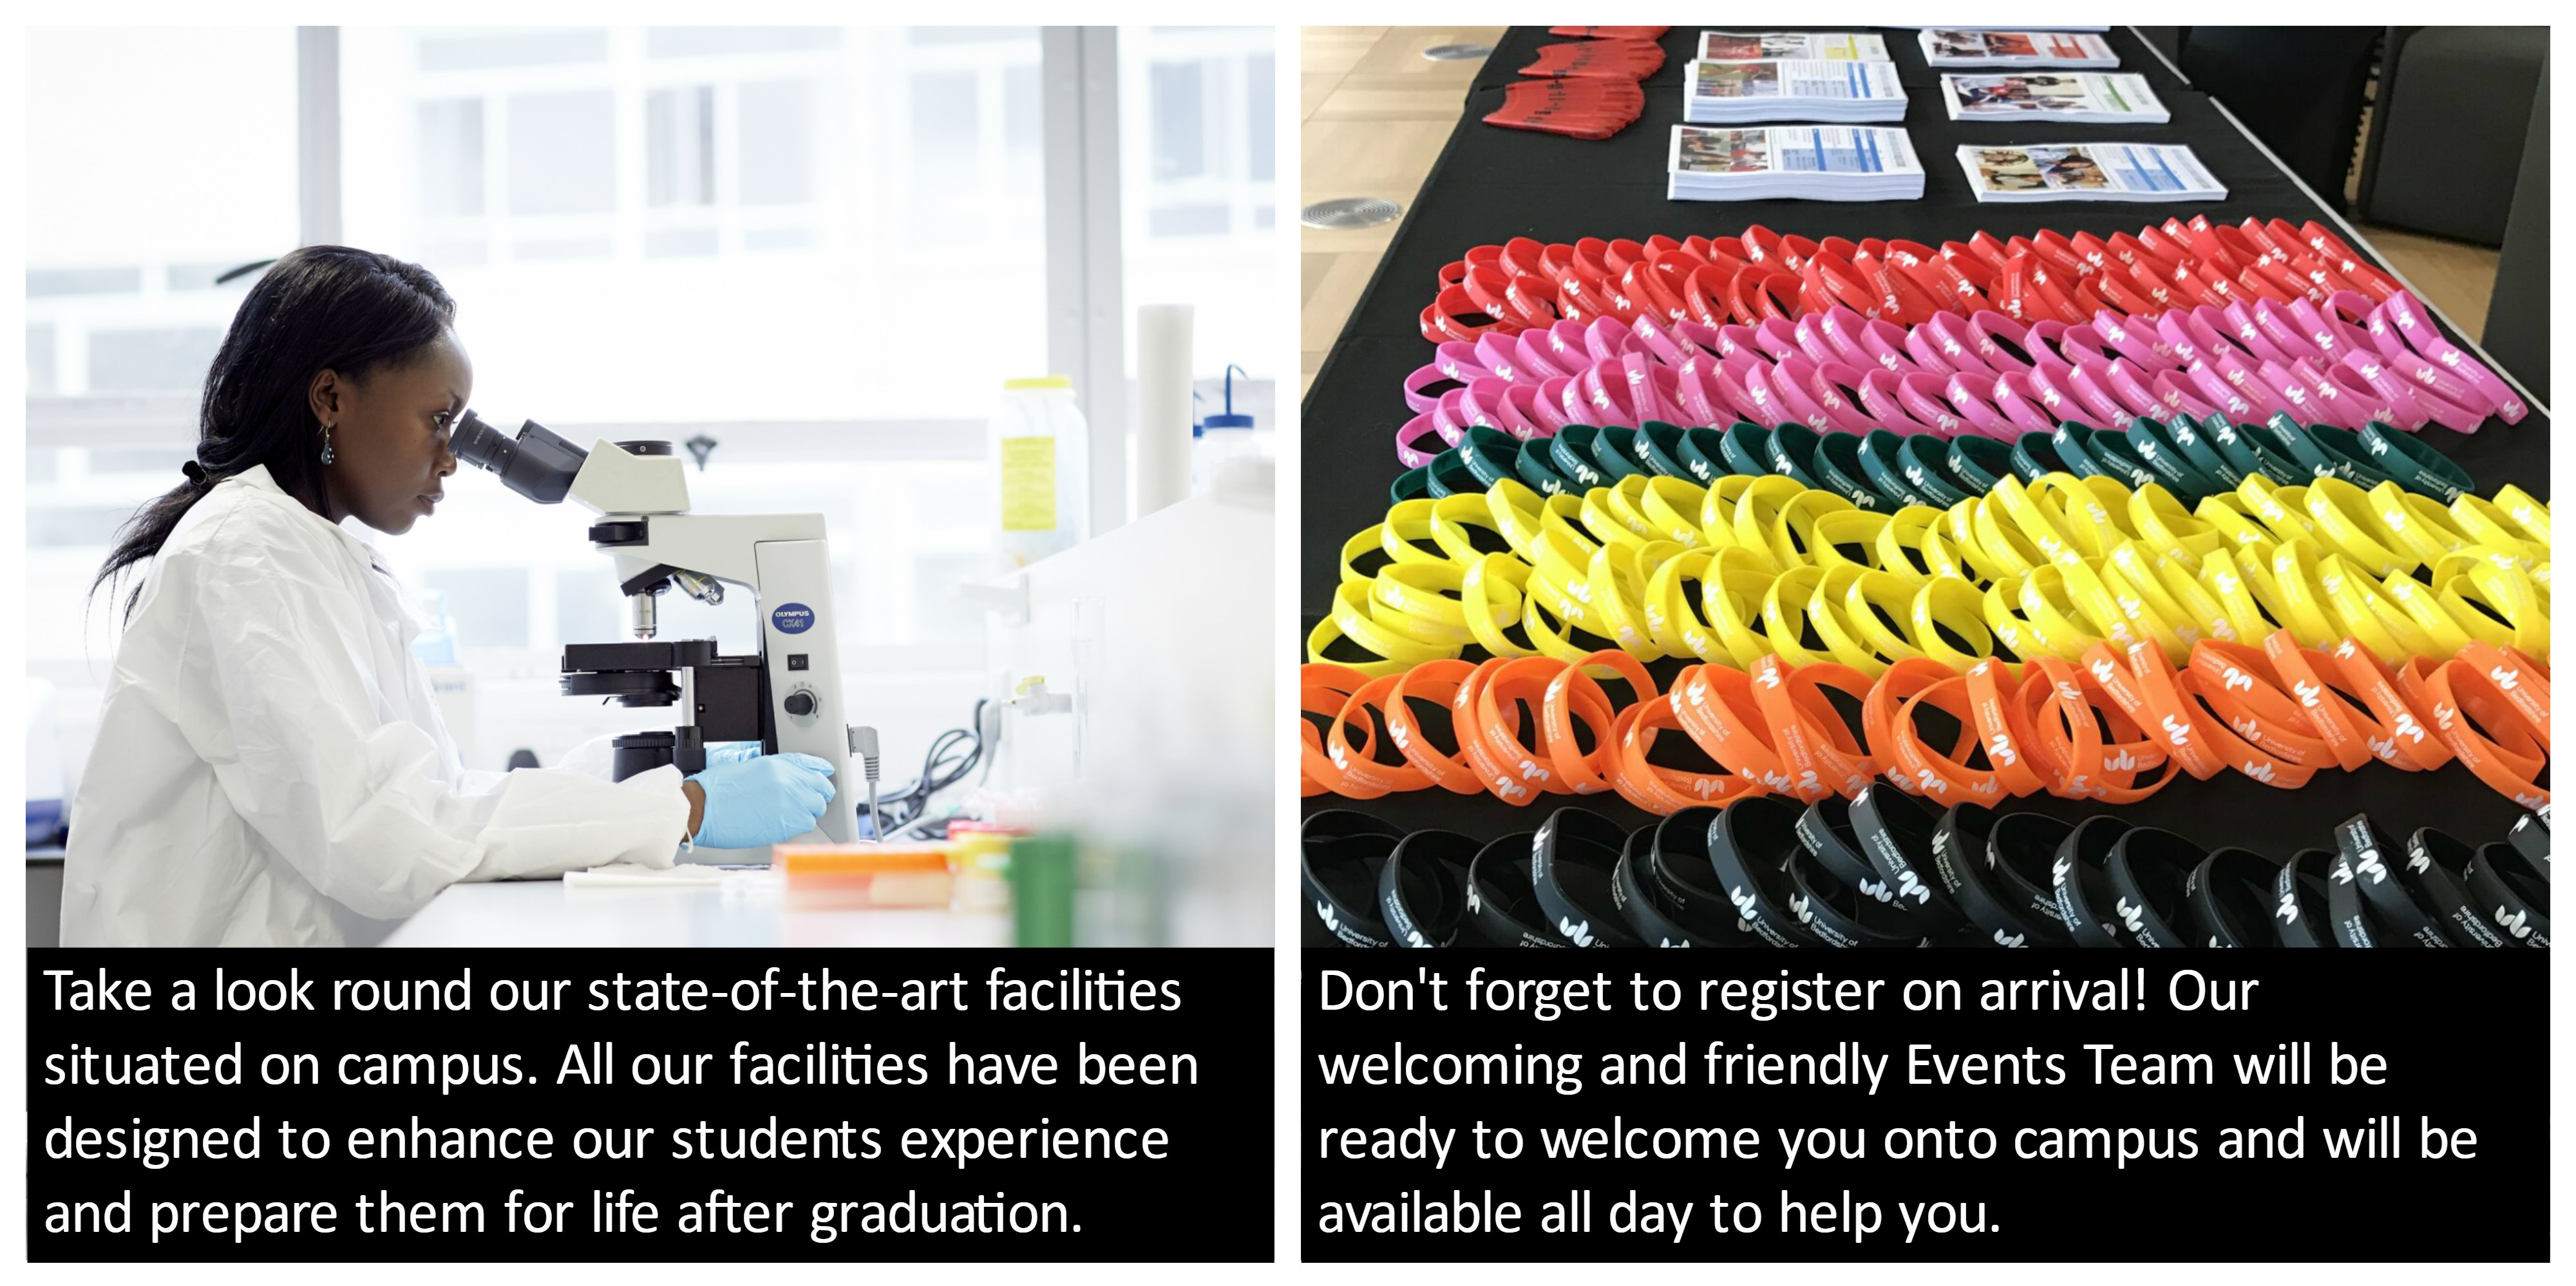 Take a look round our state-of-the-art facilities situated on campus. All our facilities have been designed to enhance our students experience and prepare them for life after graduation. Don't forget to register on arrival! Our welcoming and friendly Events Team will be ready to welcome you onto campus and will be available all day to help you.